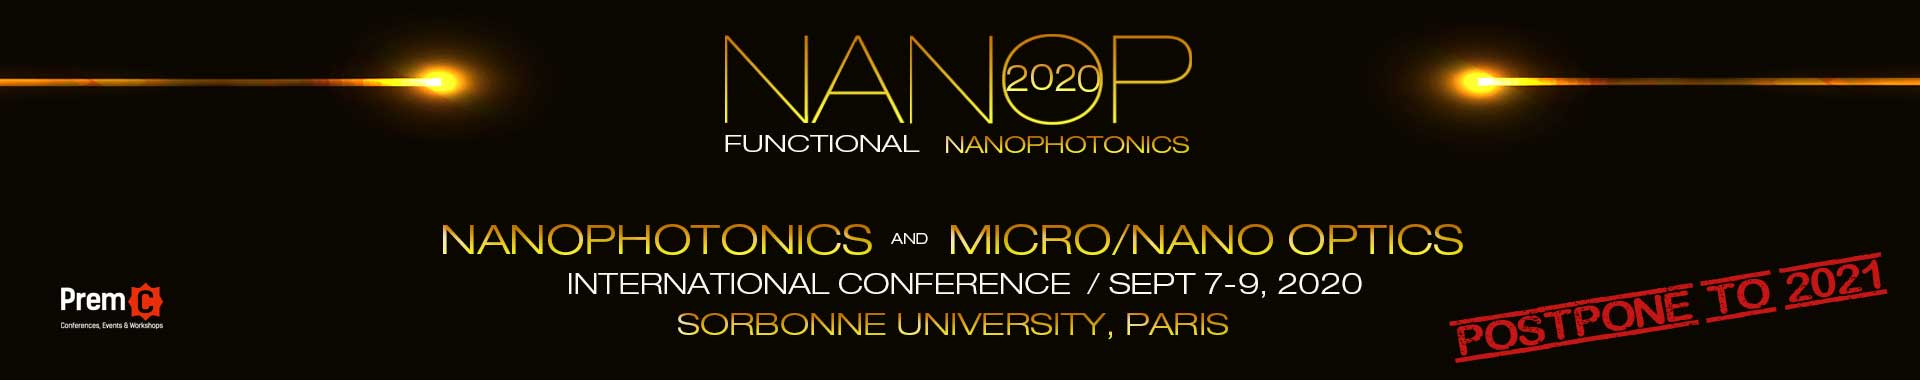 Nanophotonics and Micro/Nano Optics International Conference banner